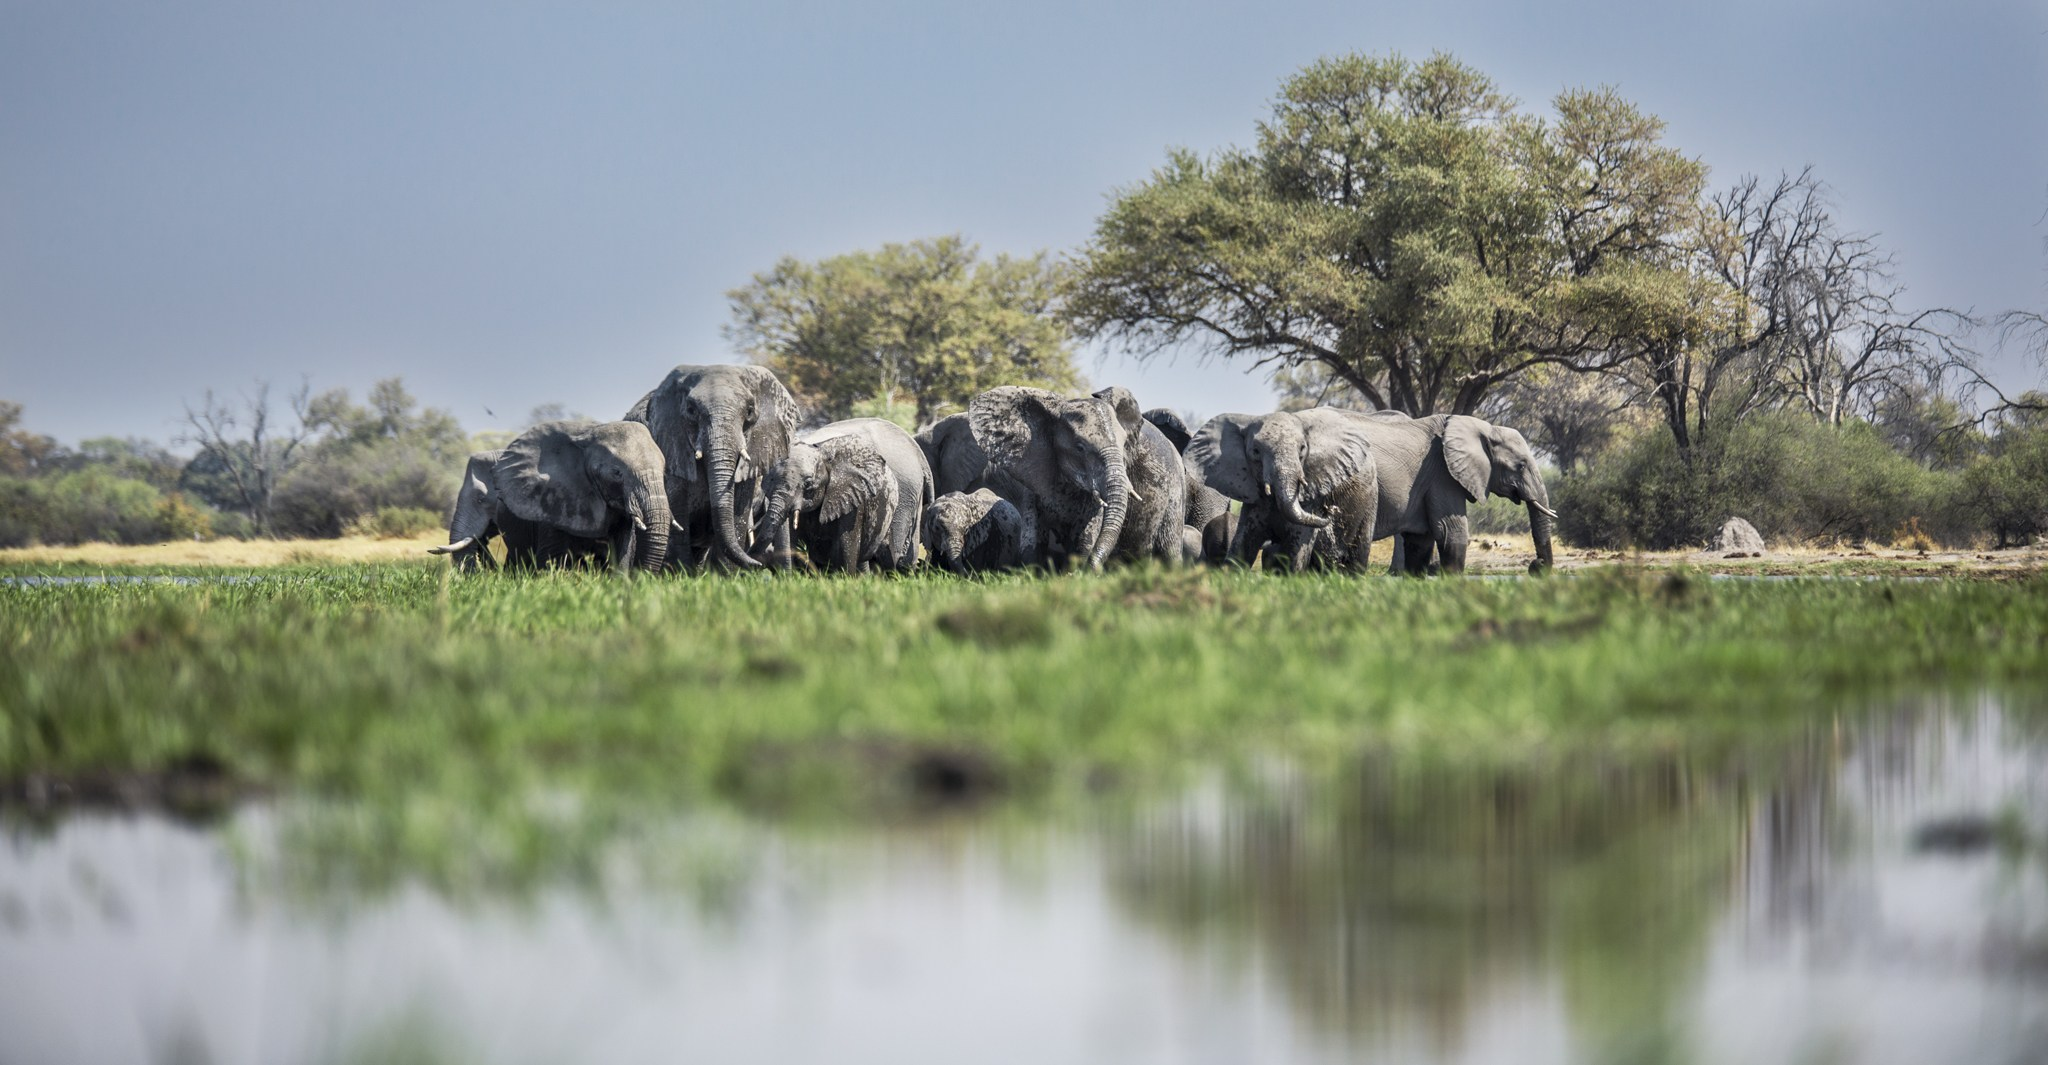 Herd of elephants standing and drinking in Botswana